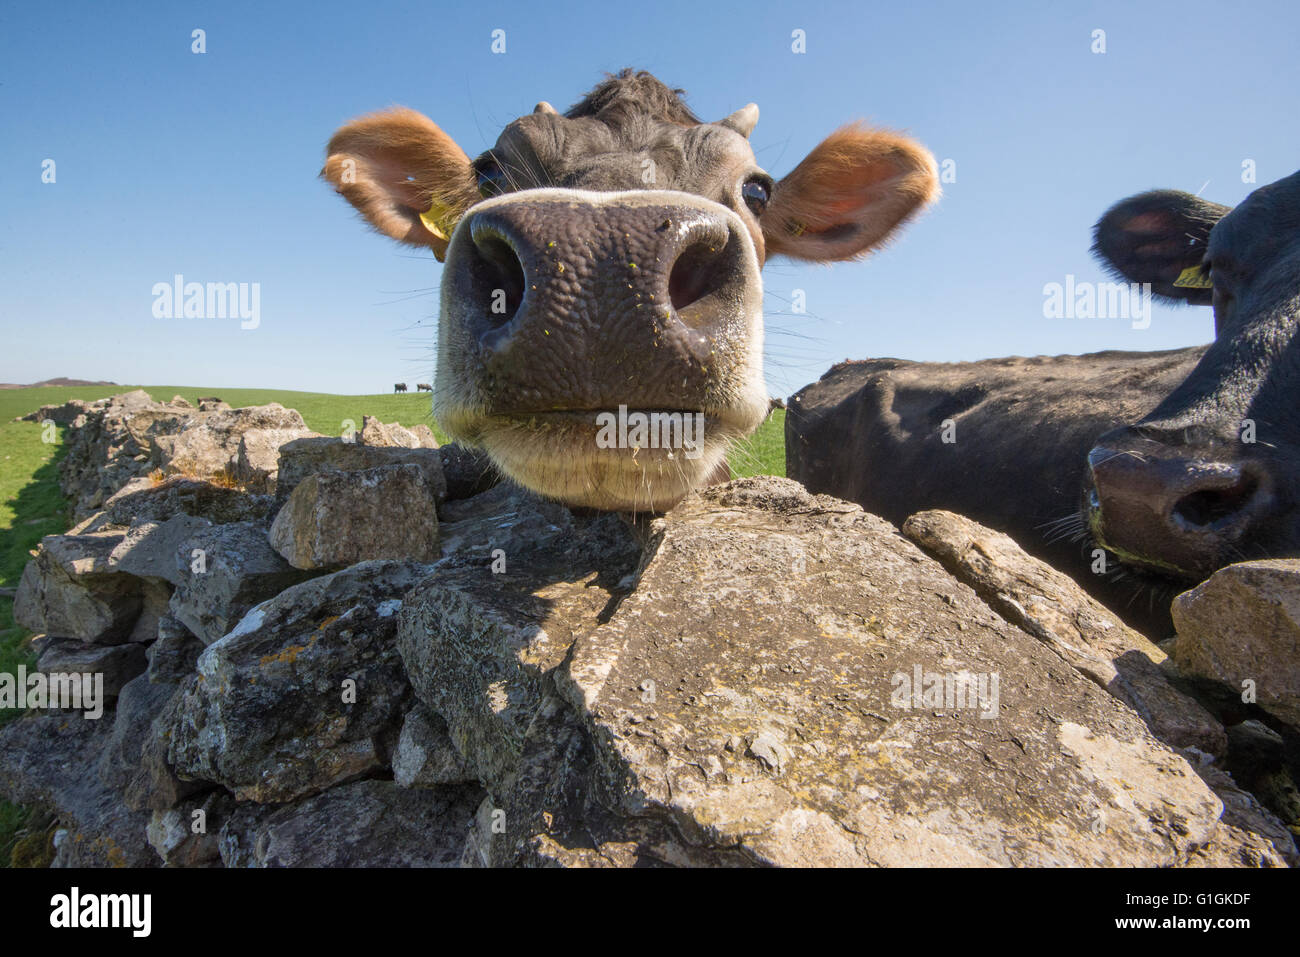 Close up of a Jersey cross dairy cow looking over a stone wall, Clitheroe, Lancashire. - Stock Image